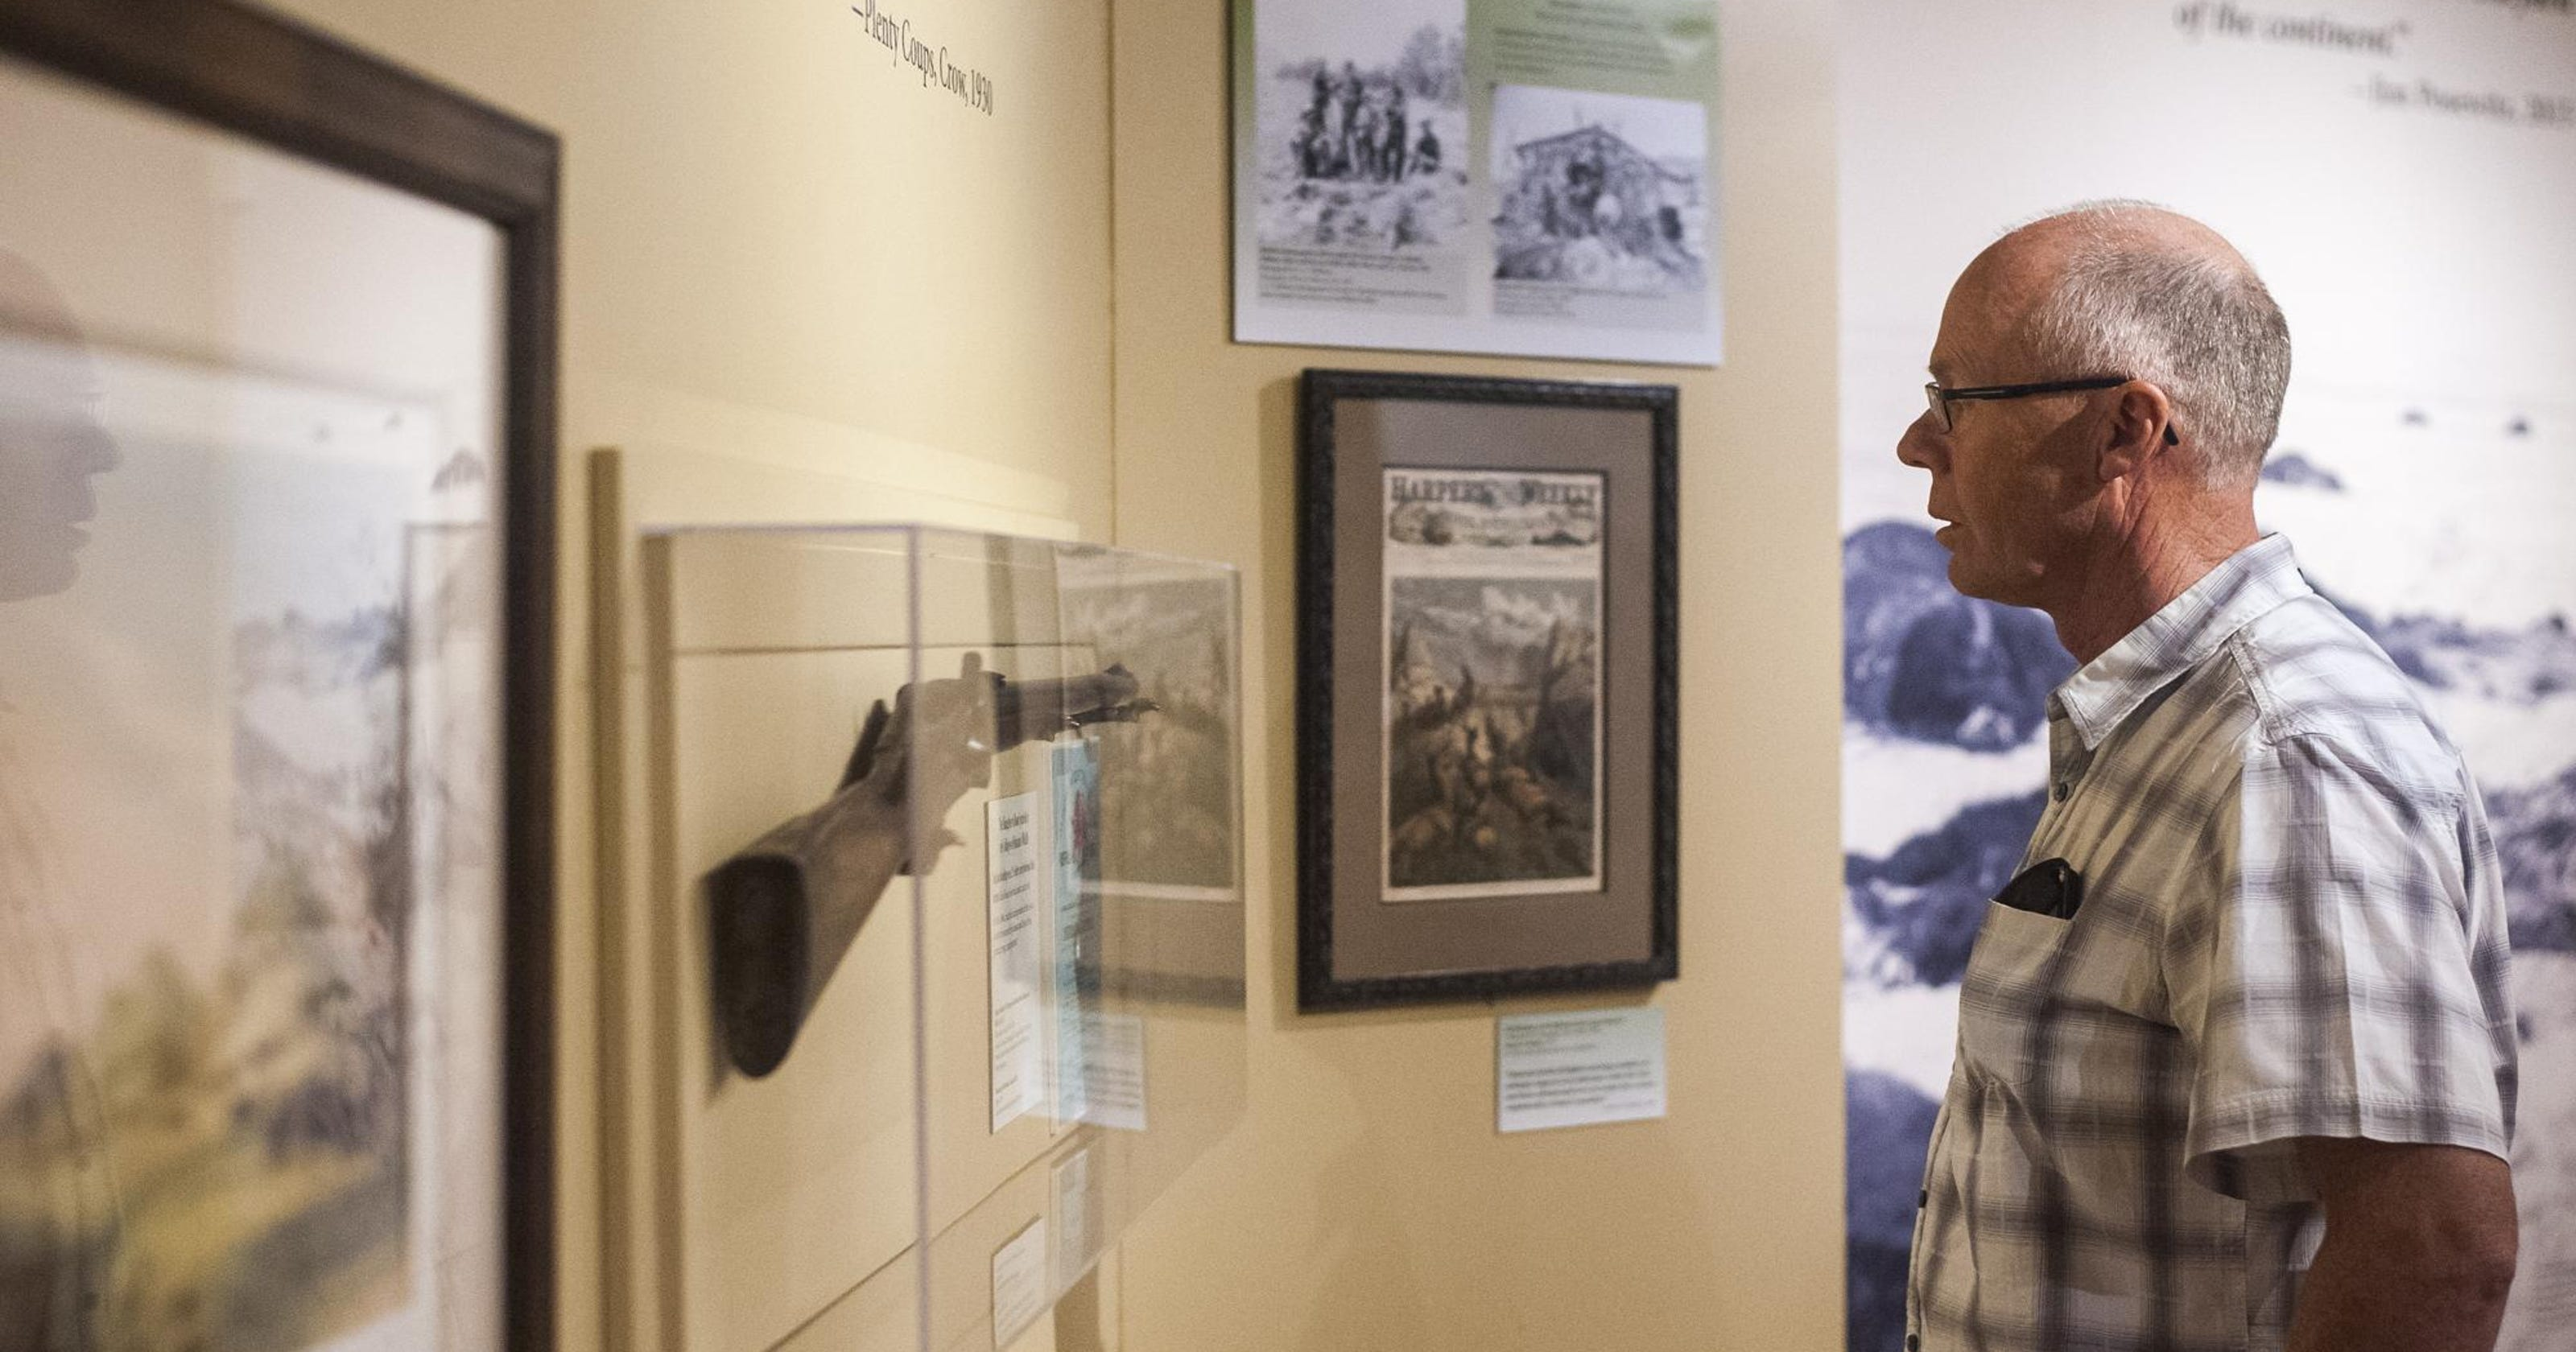 Montana hunting history highlighted in new exhibit